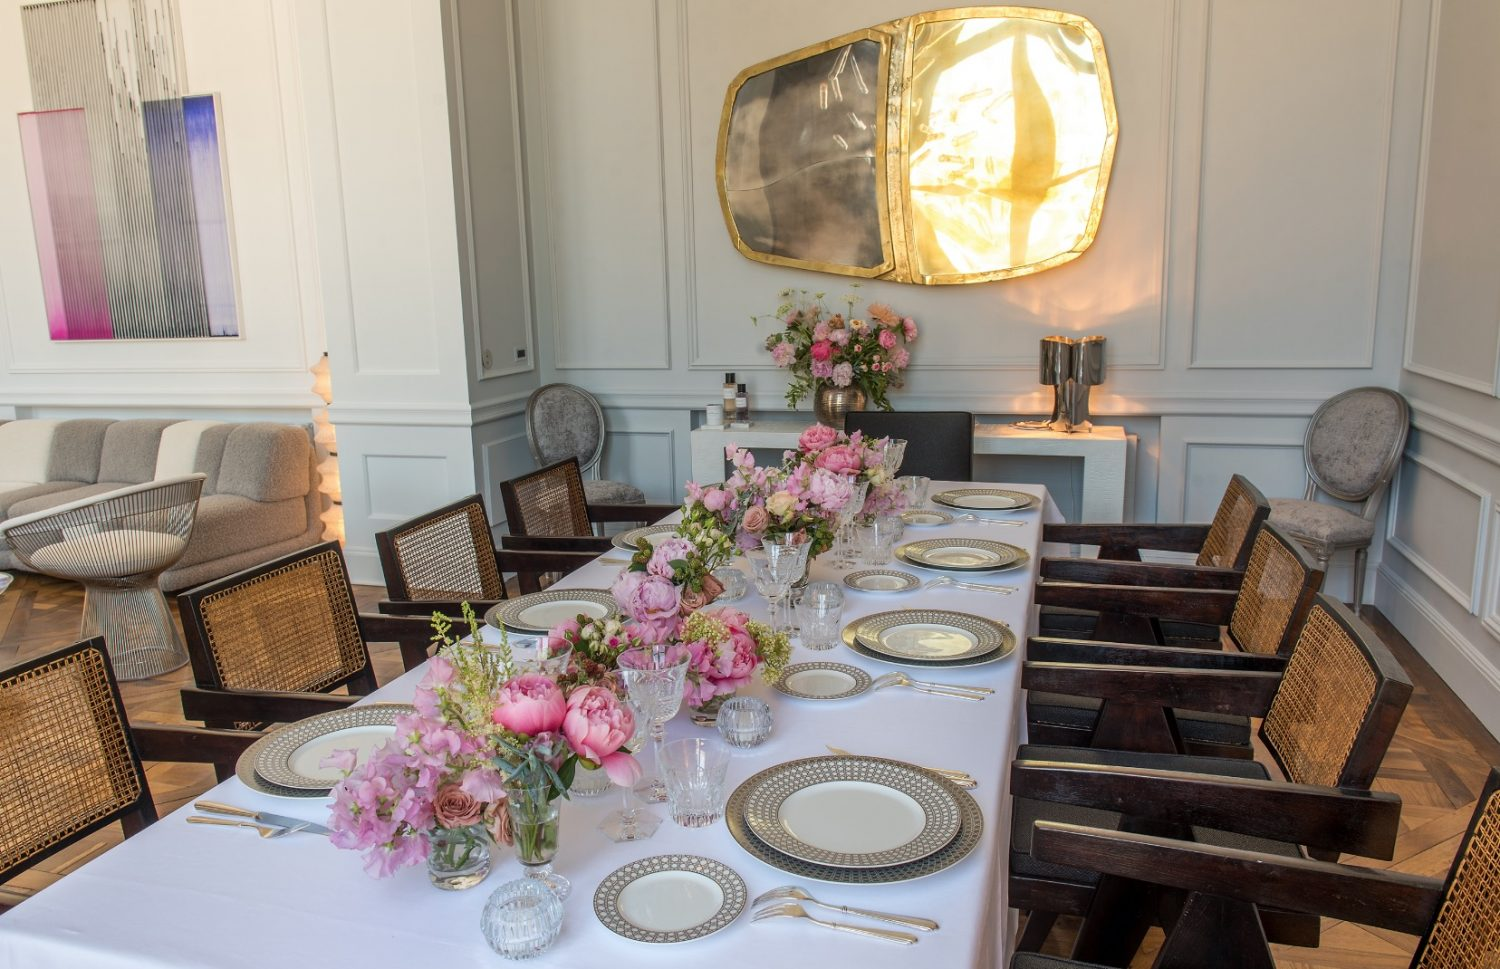 dior Dior Paris Apartment Envisioned by Carpenters Workshop Gallery Carpenters Workshop Gallery9